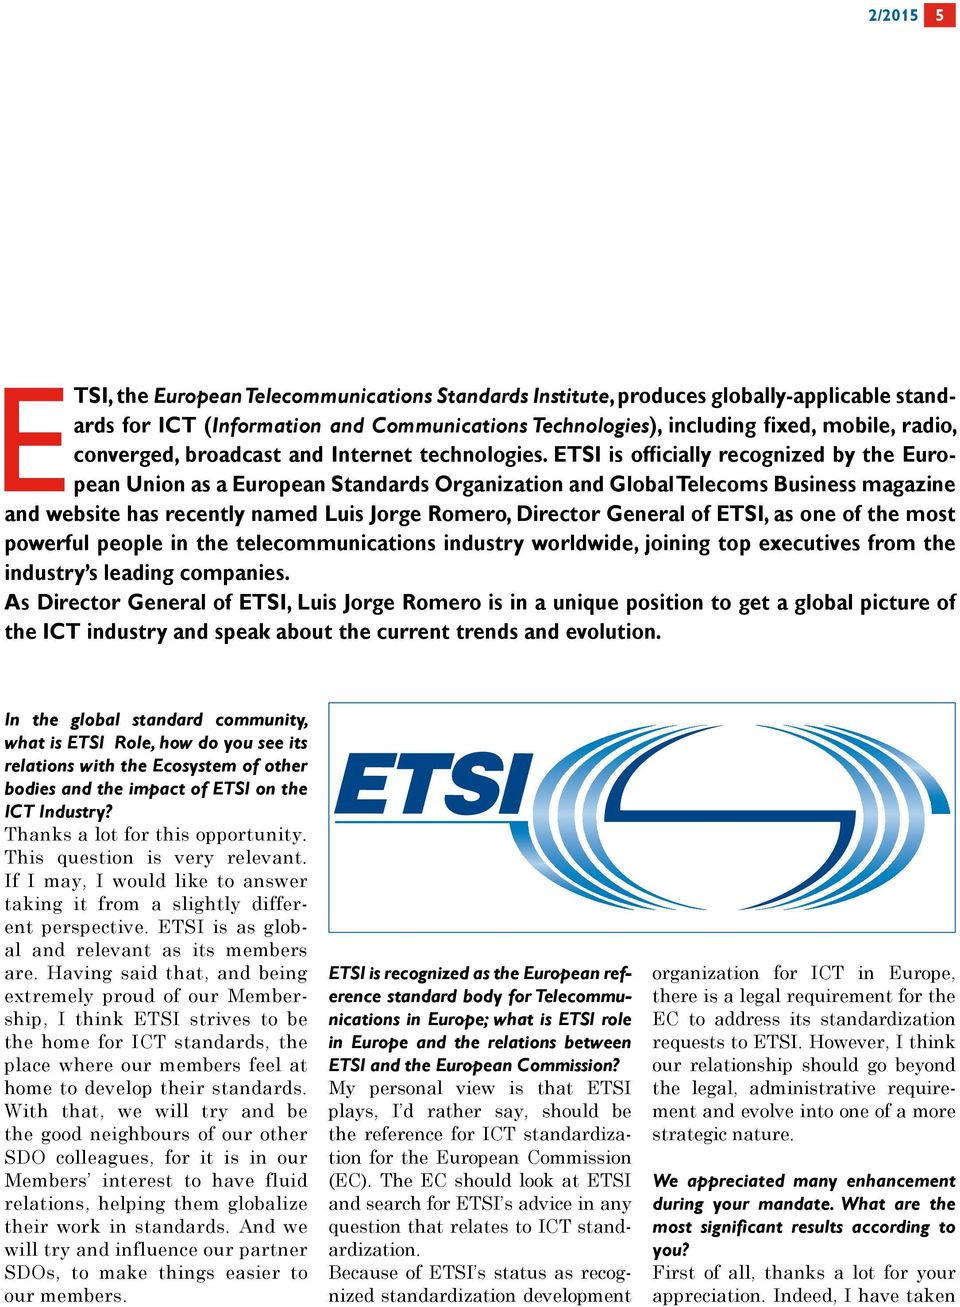 ETSI is officially recognized by the European Union as a European Standards Organization and Global Telecoms Business magazine and website has recently named Luis Jorge Romero, Director General of